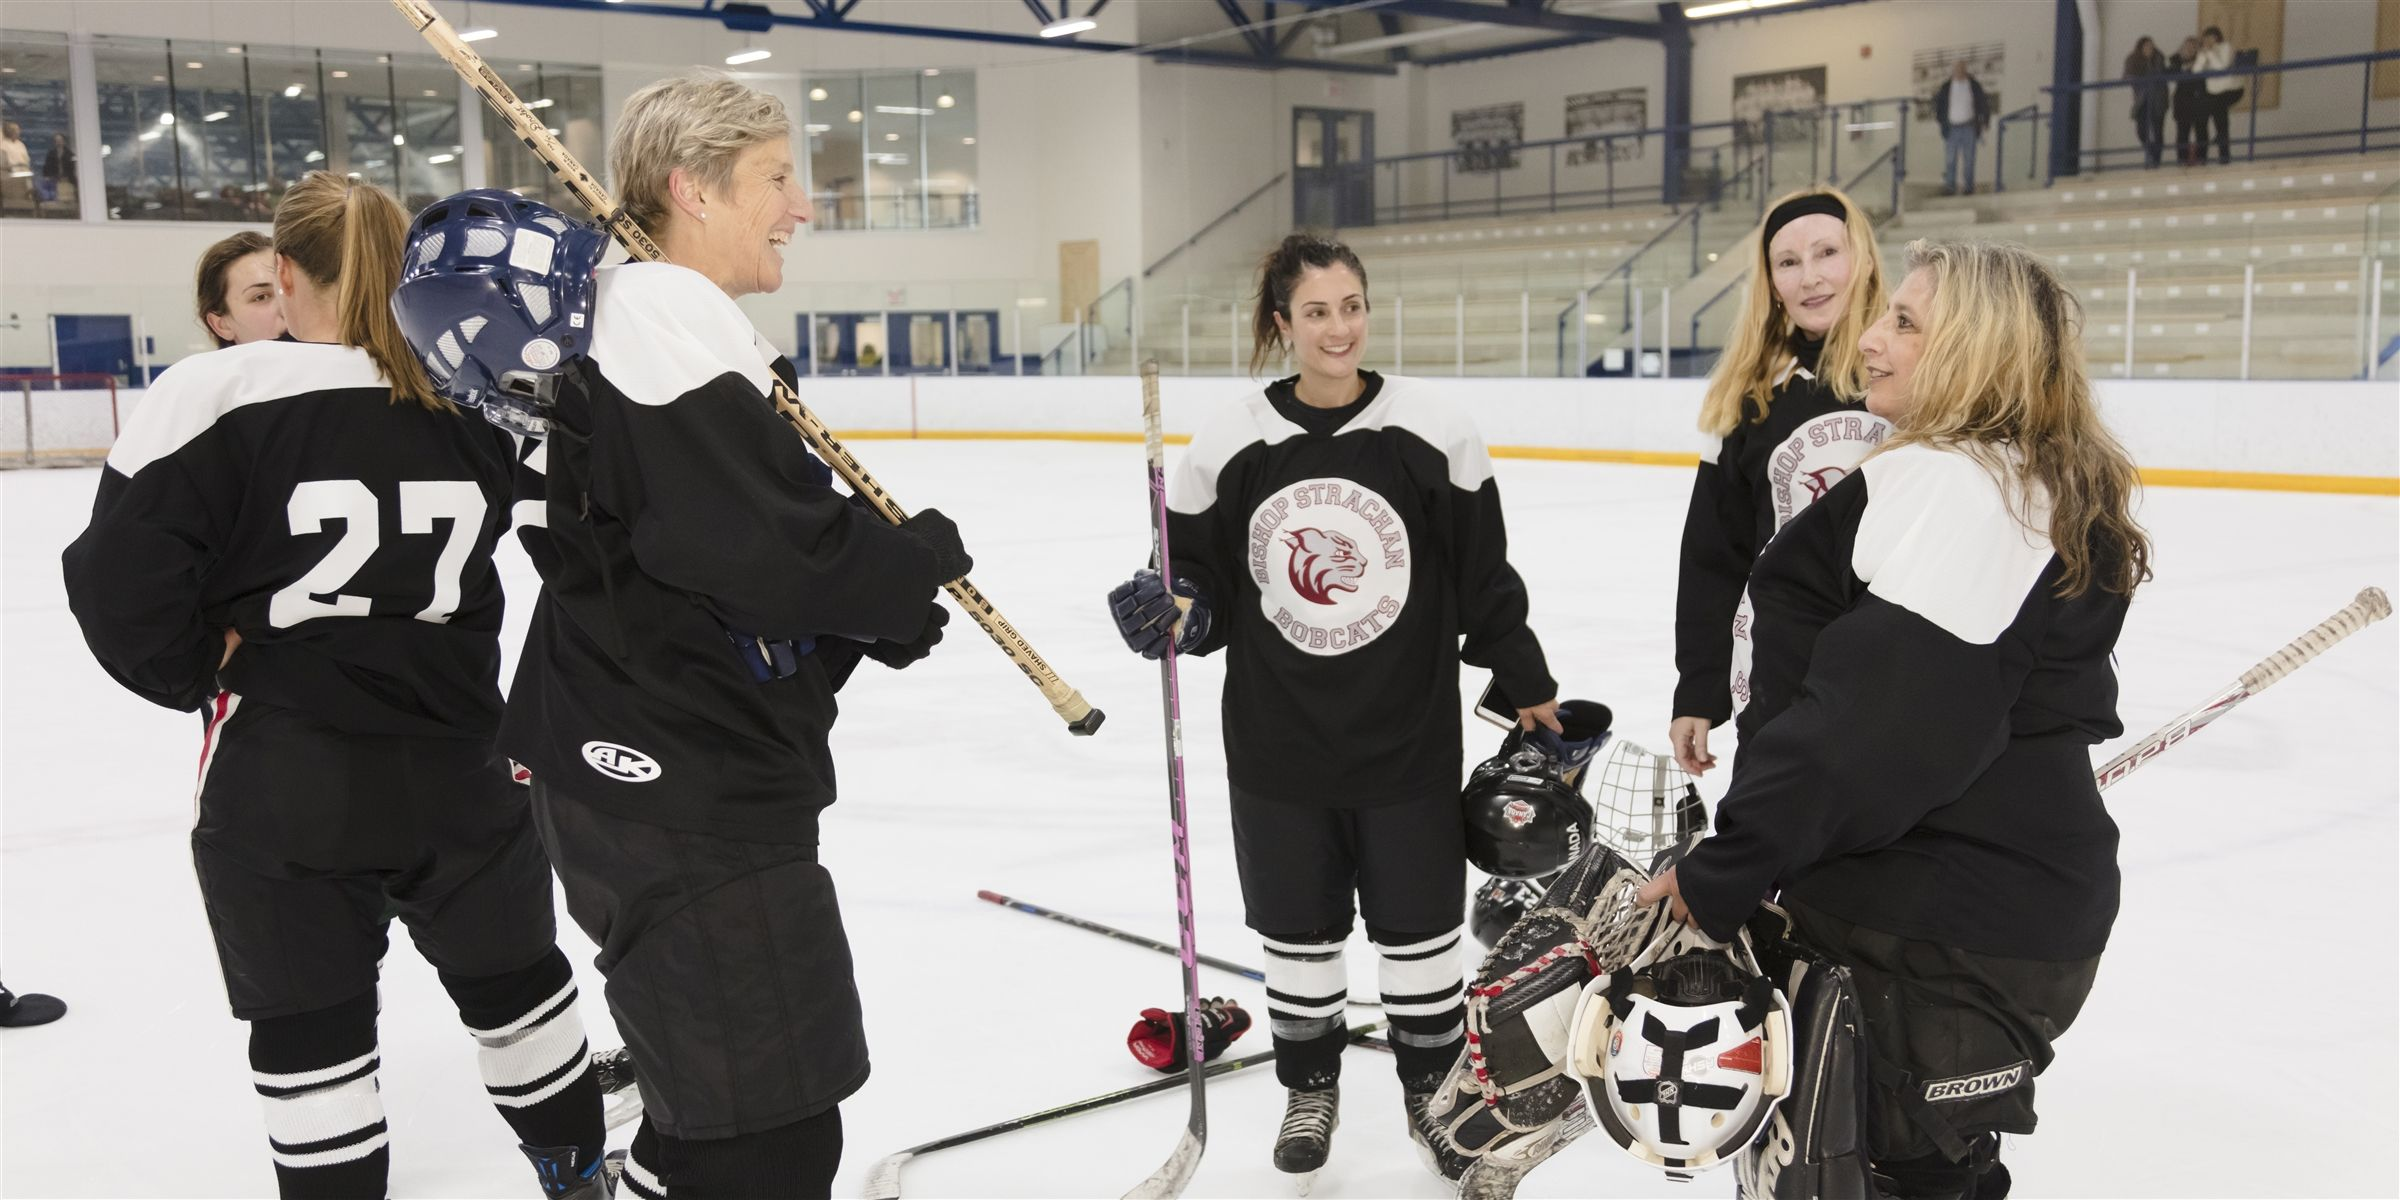 Alumnae in hockey gear on the ice